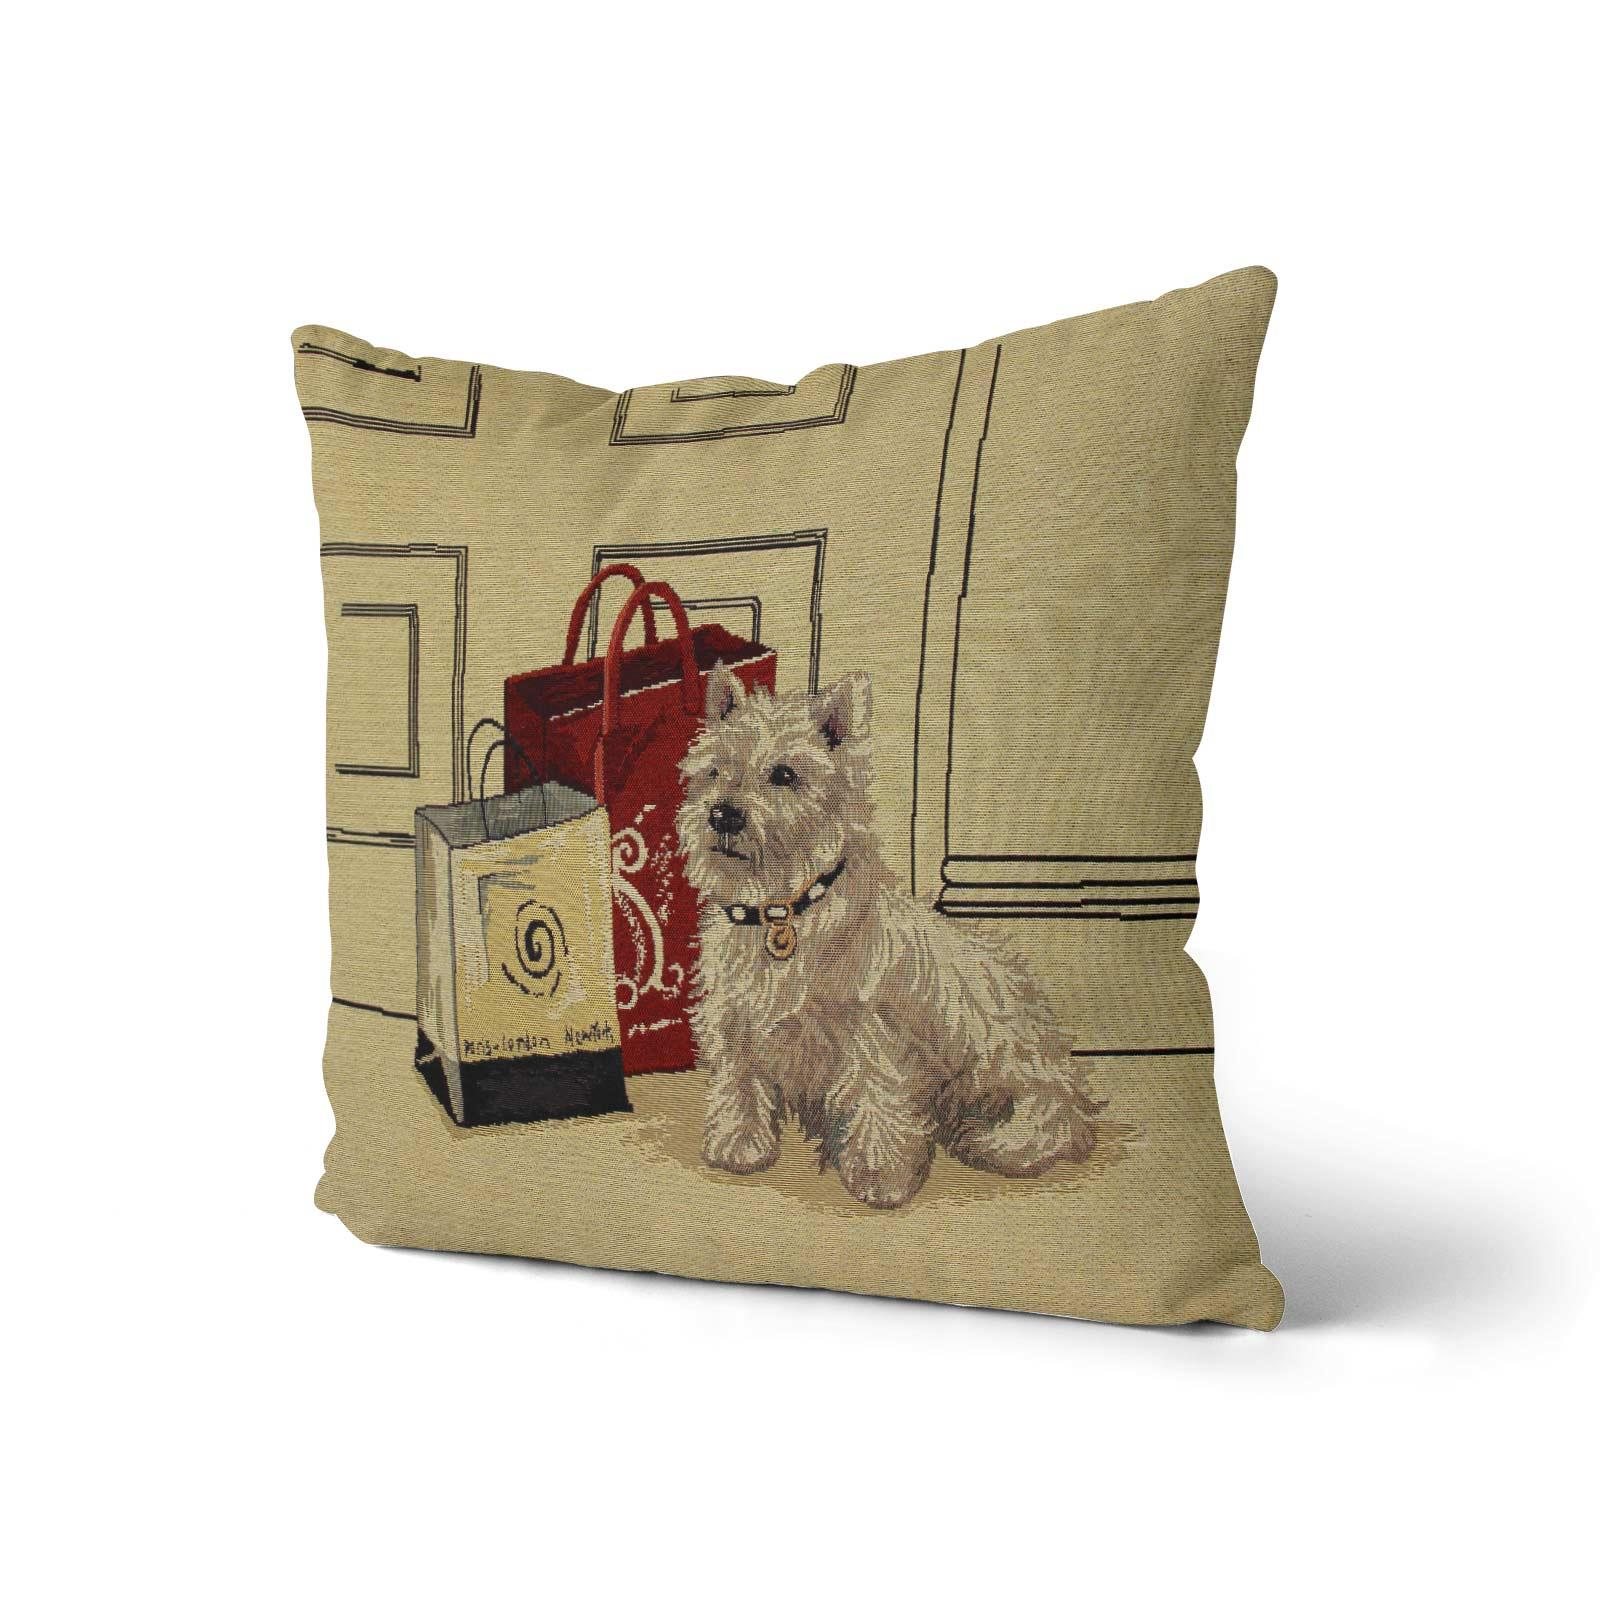 Tapestry-Cushion-Covers-Vintage-Pillow-Cover-Collection-18-034-45cm-Filled-Cushions thumbnail 171